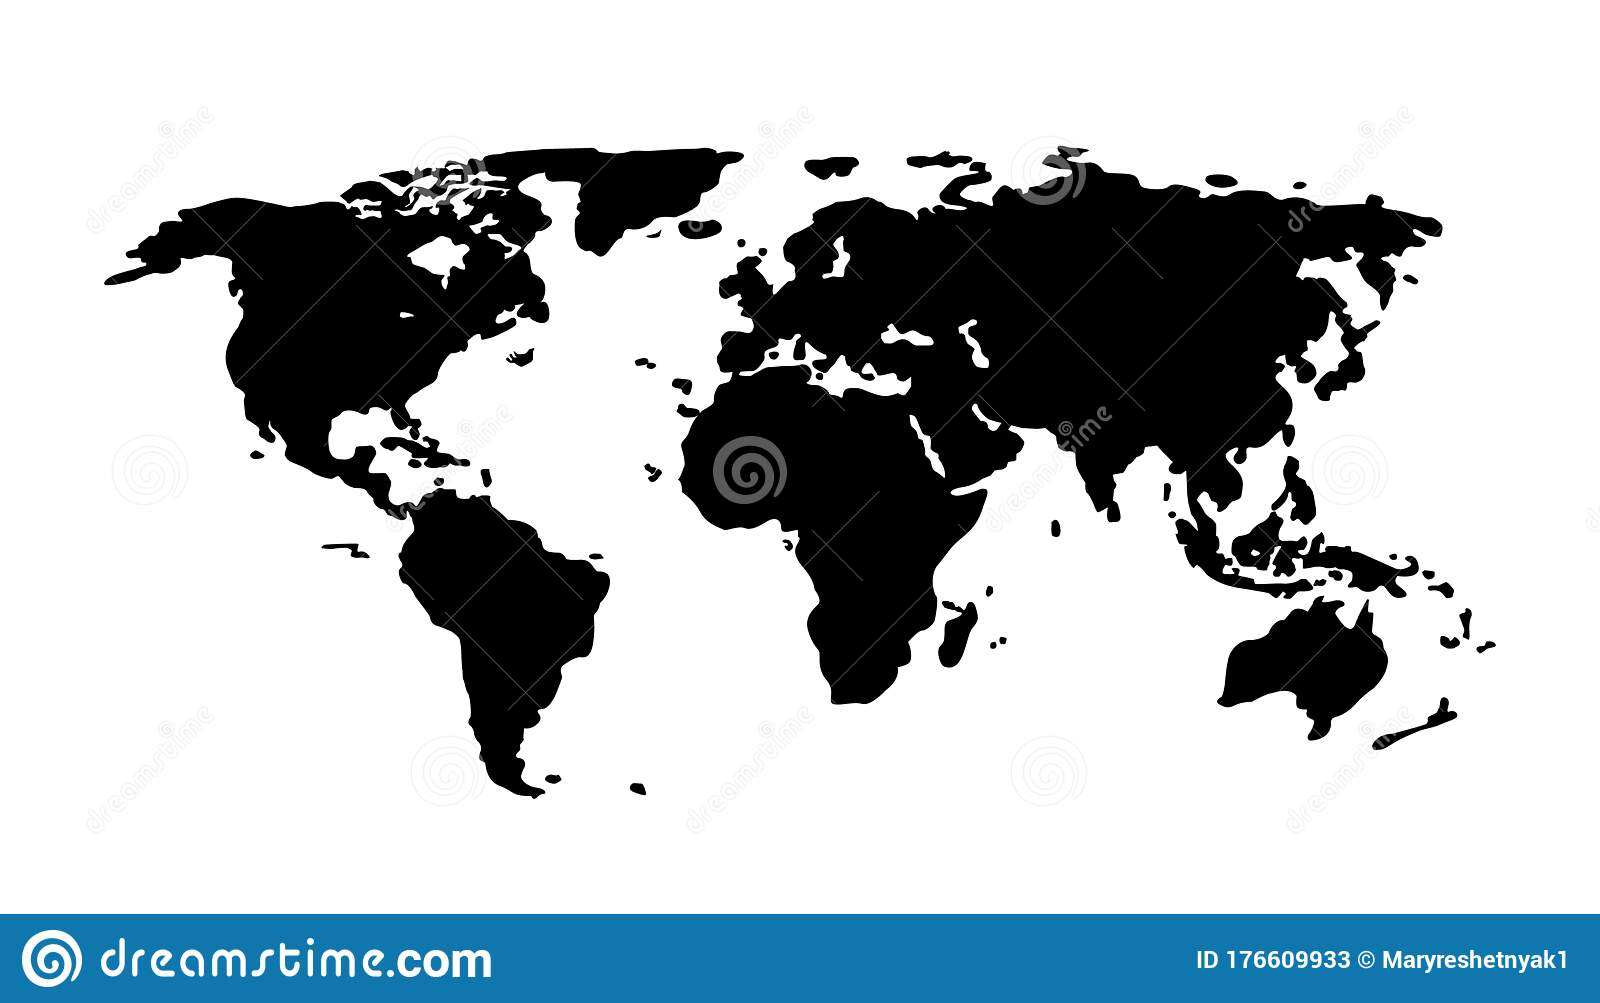 Black World Map On White Background Europe Asia South America North America Australia Africa Silhouette Continent Stock Vector Illustration Of China India 176609933